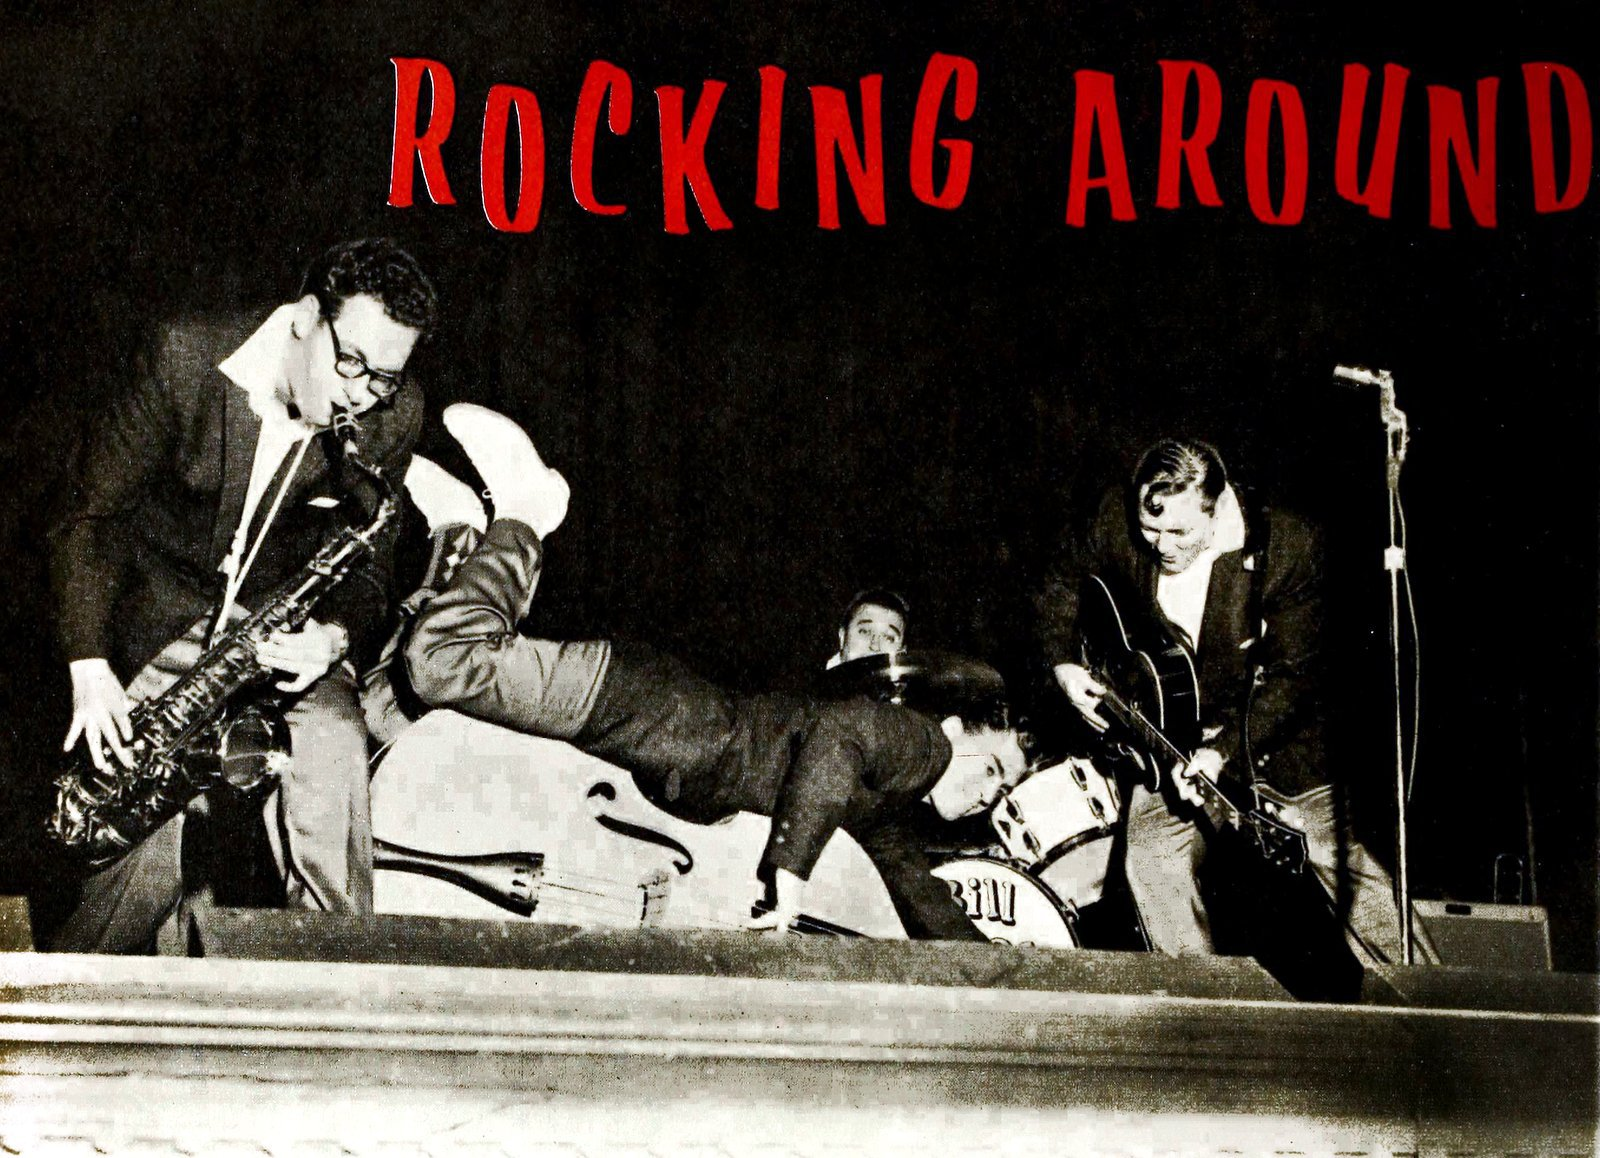 Rocking around with Bill Haley - 1957 (2)